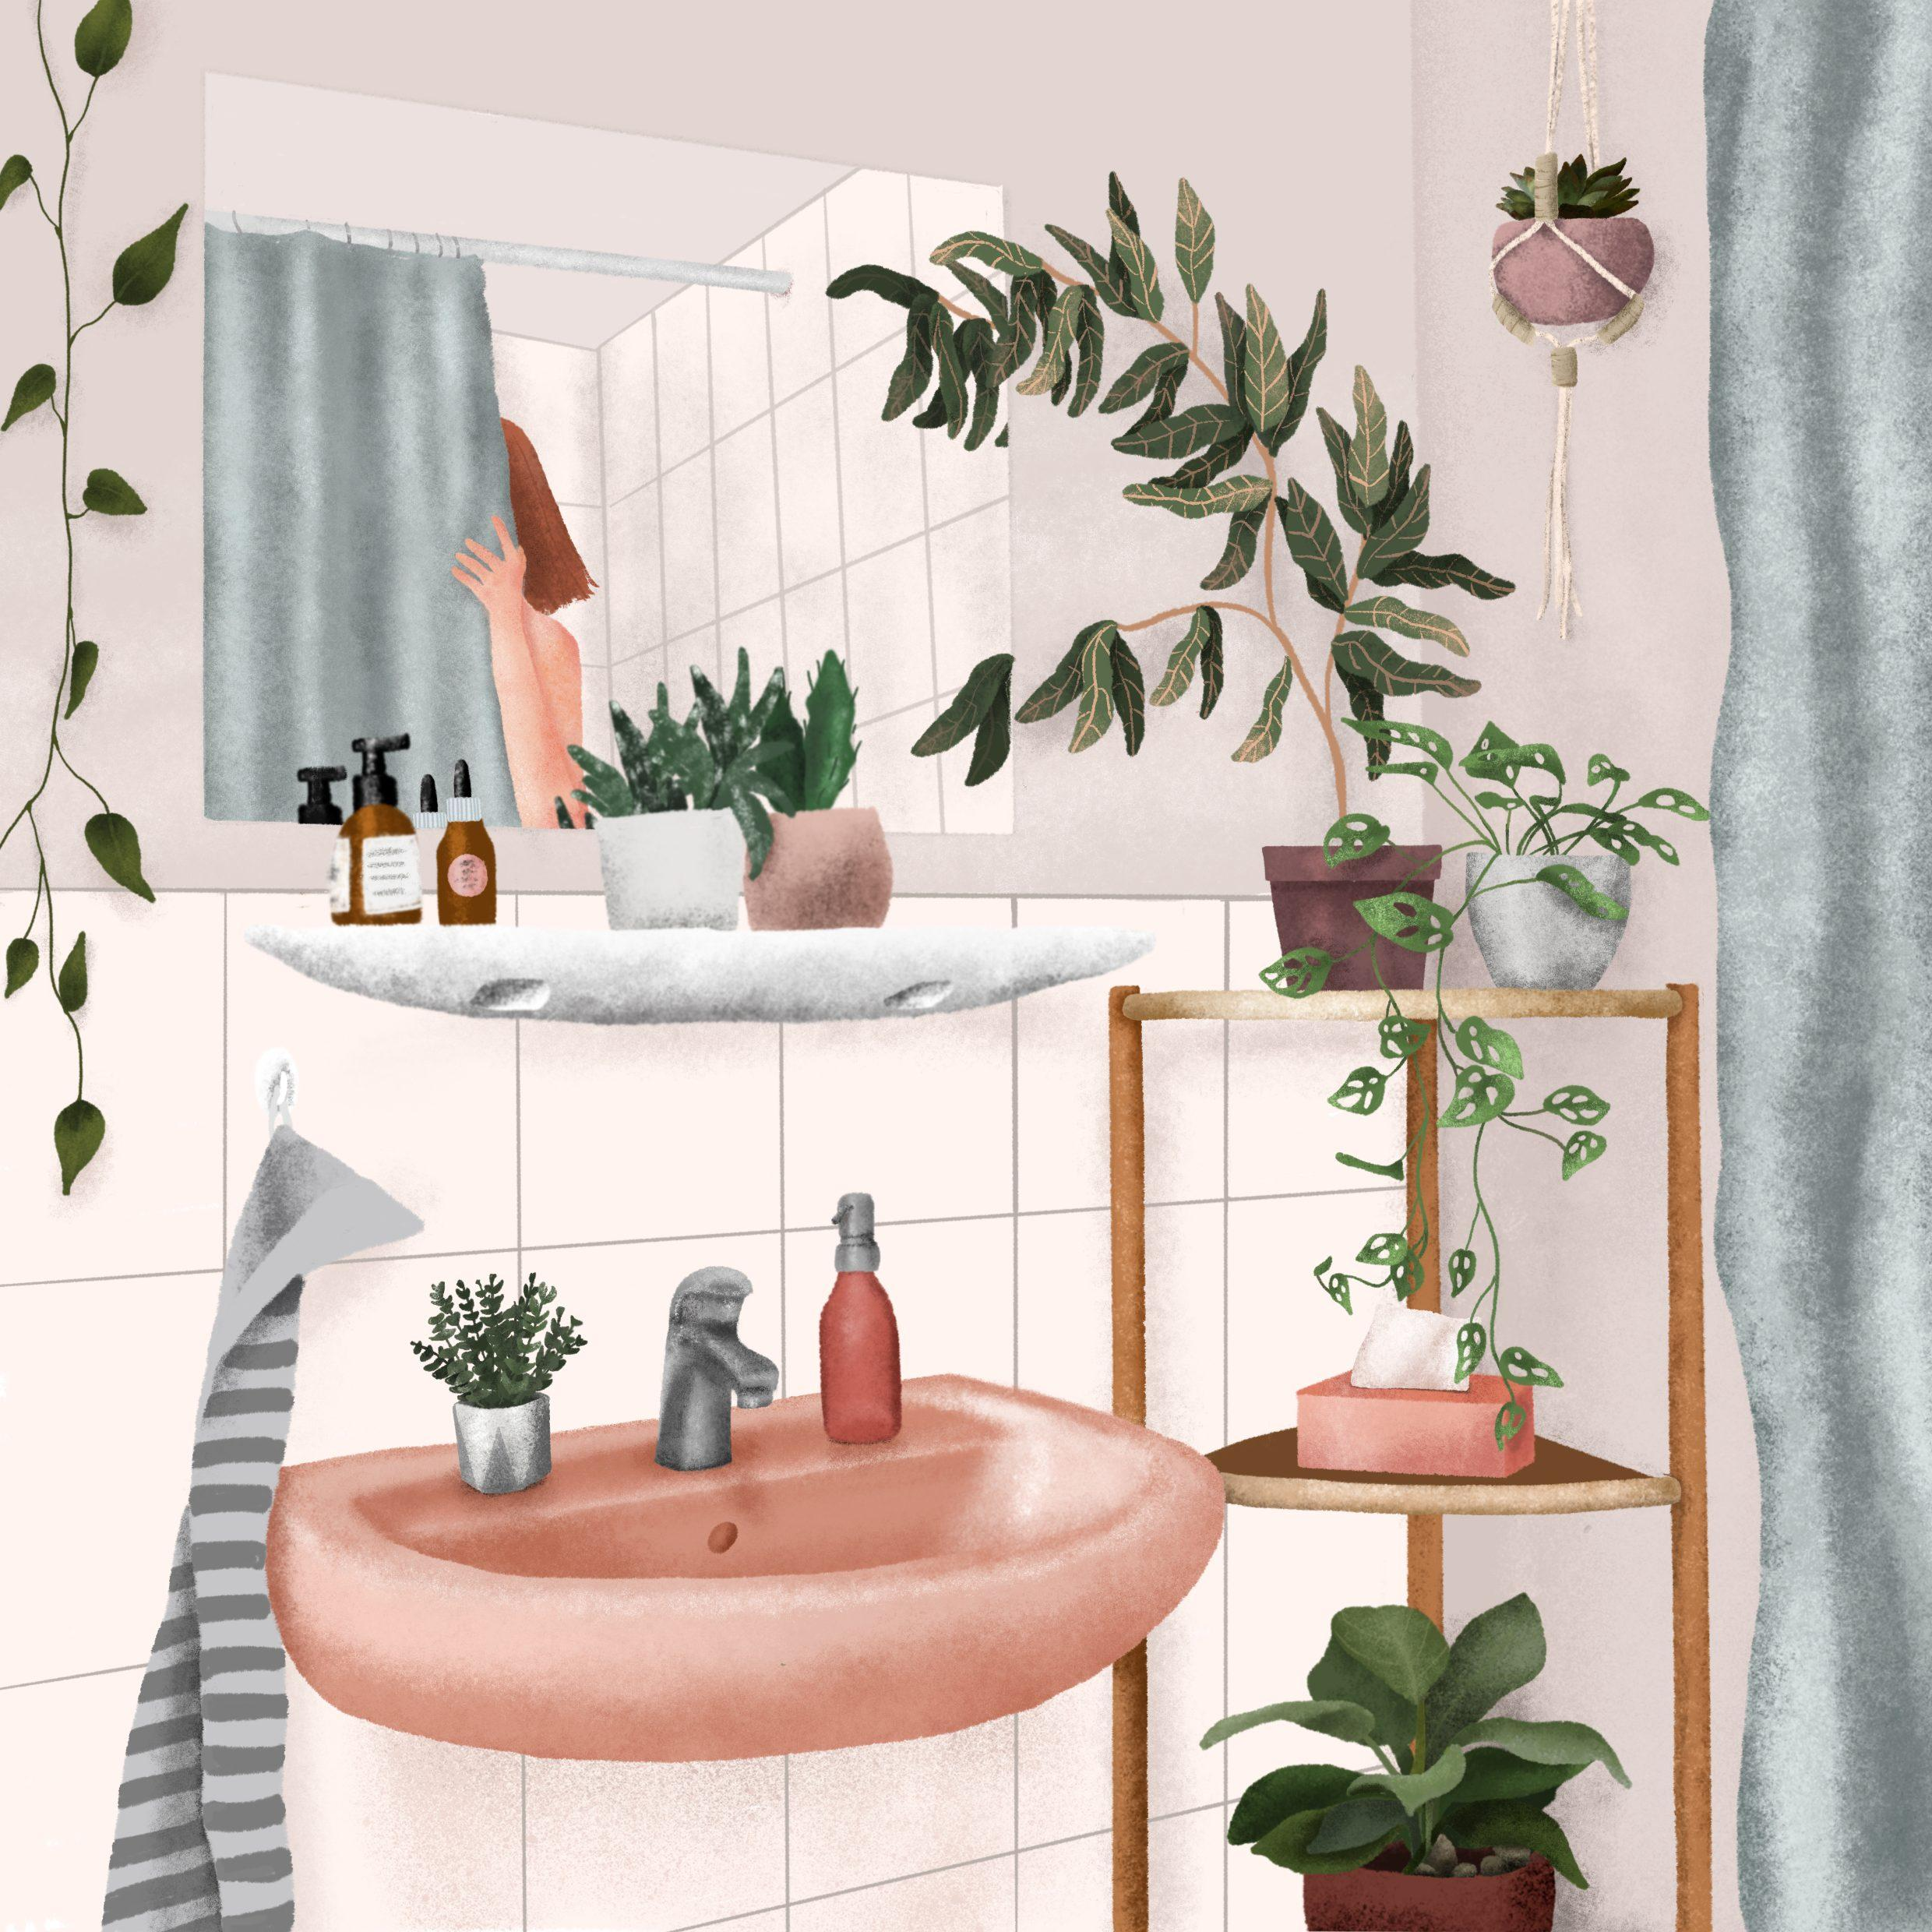 Beautyday Badezimmer Deko Bathroom Bad Illus